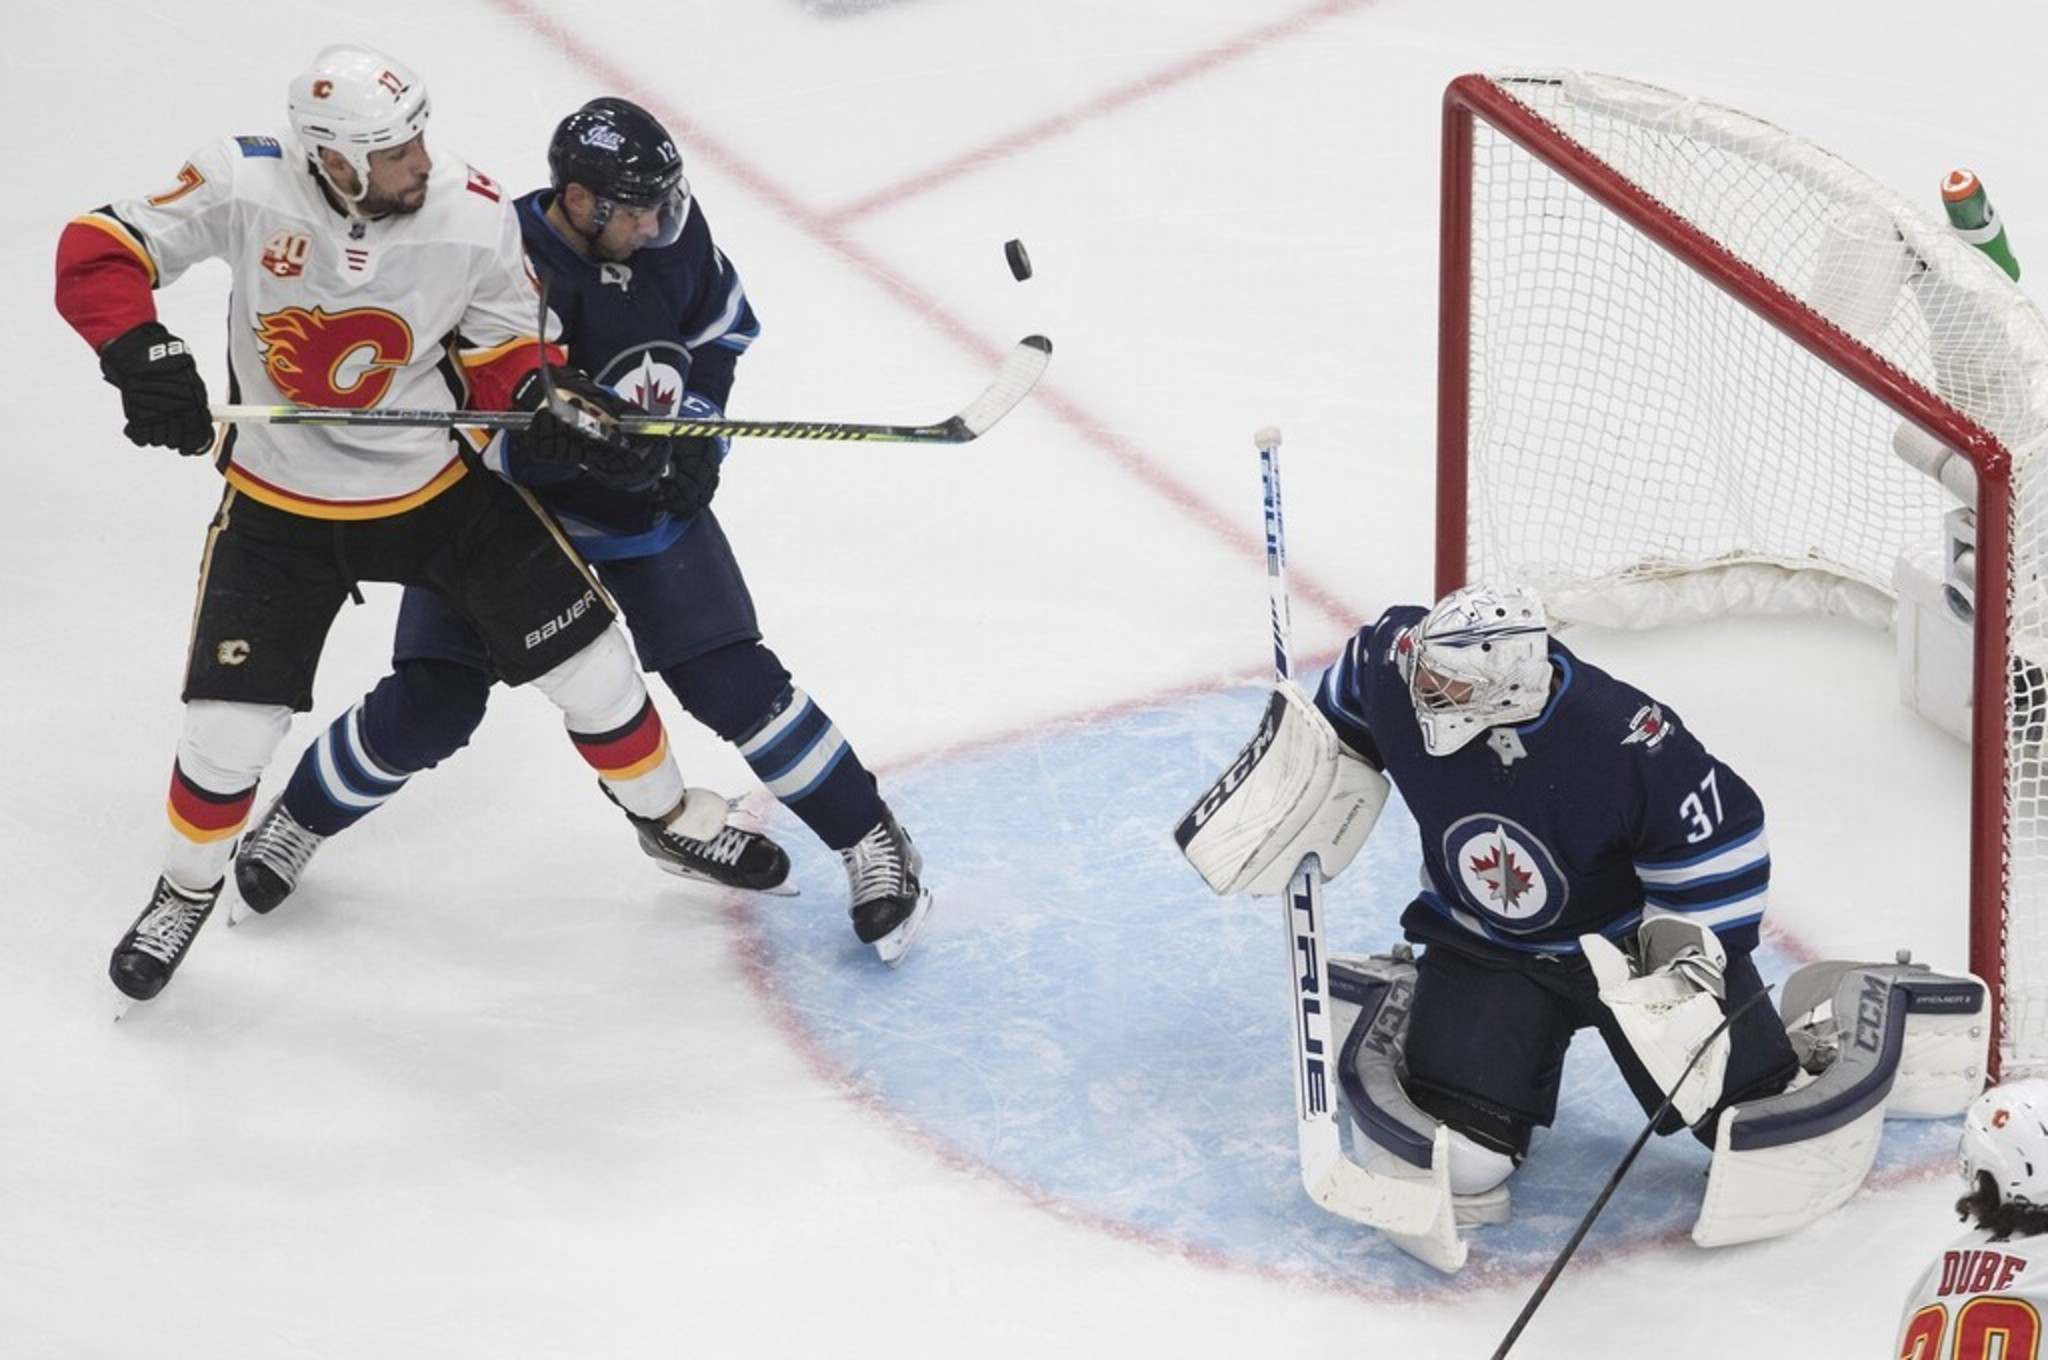 Connor Hellebuyck cut down his rebound rate by about eight per cent, but the Flames owned too much territory in front of him in the series.(Jason Franson / The Canadian Press)